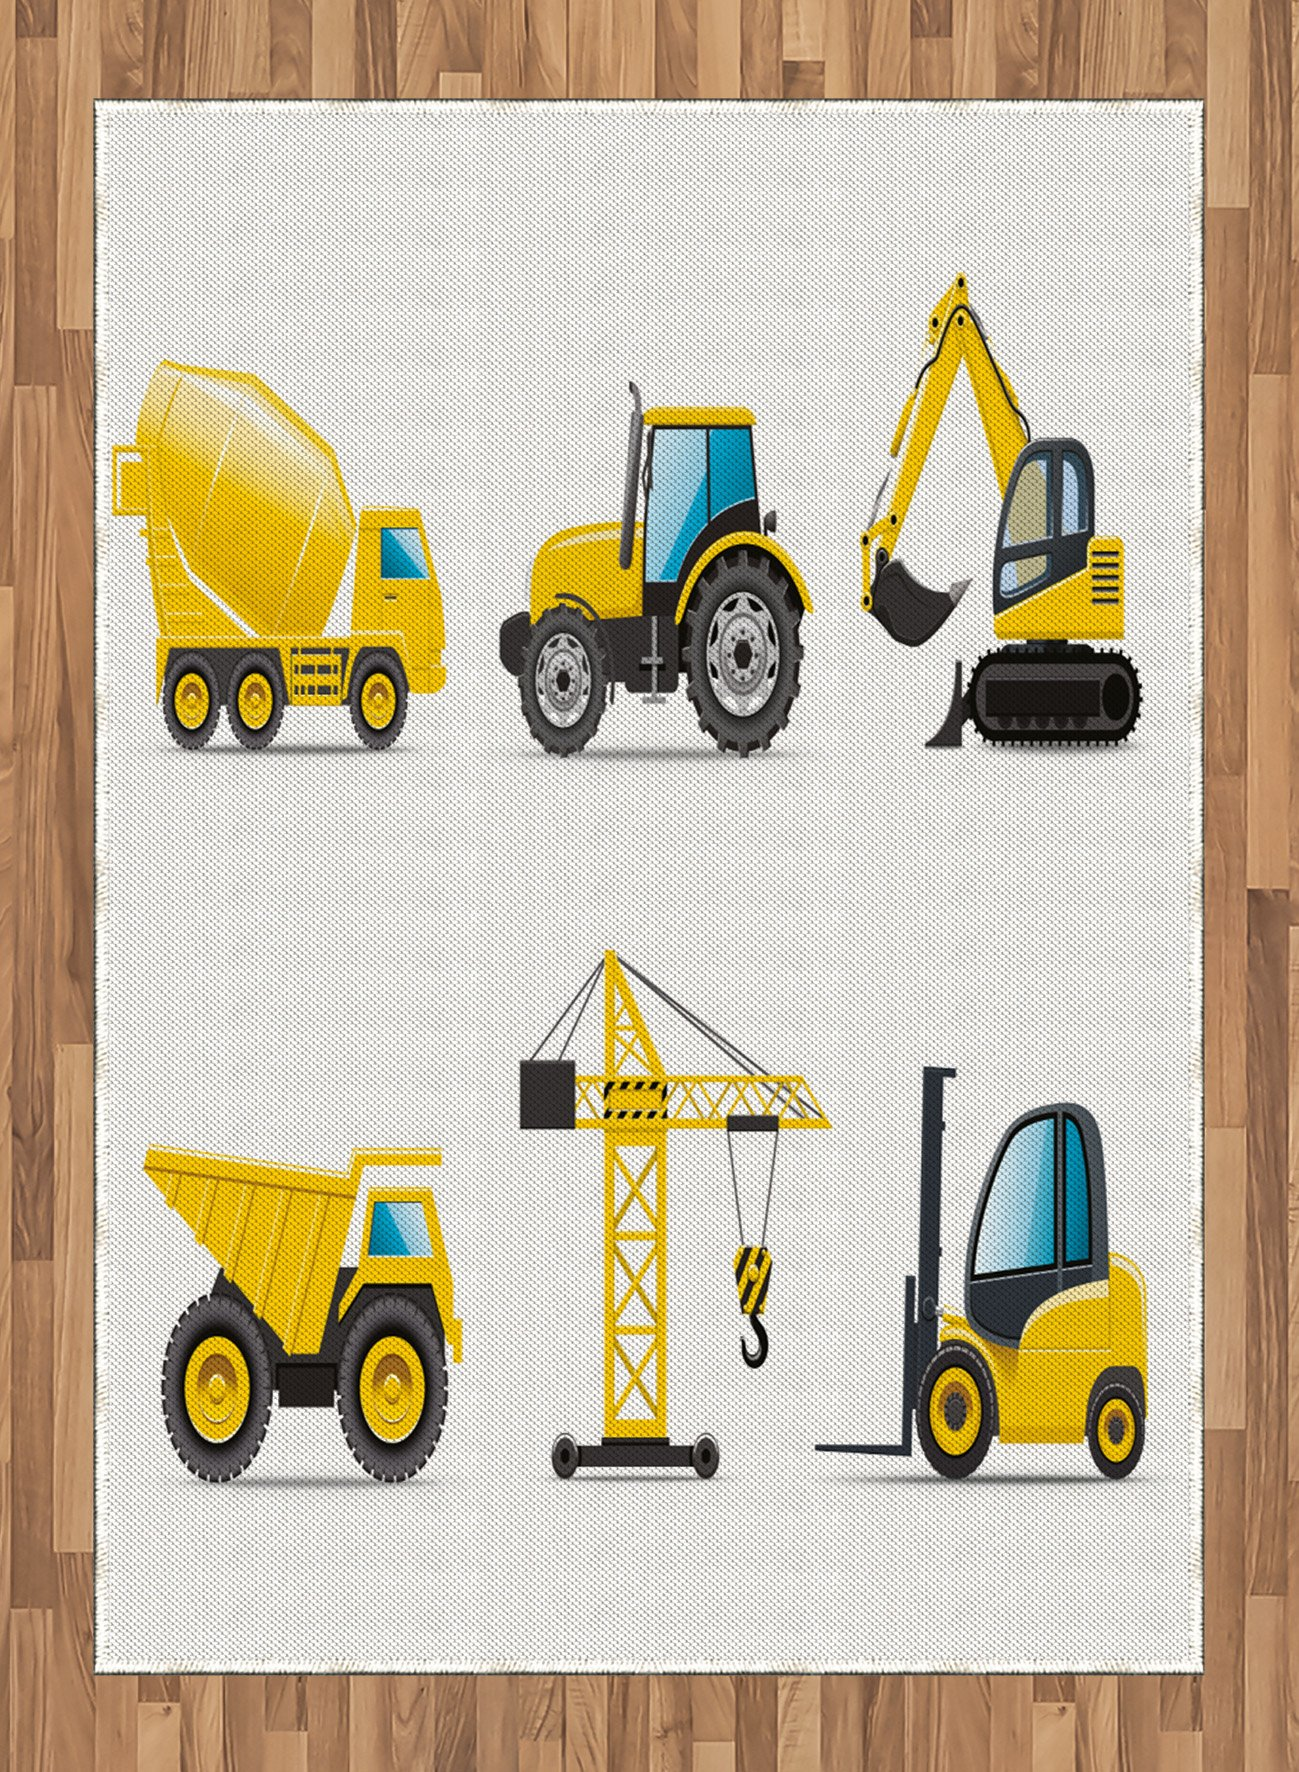 Boy's Room Area Rug by Lunarable, Cartoon Heavy Machinery Truck Crane Digger Mixer Tractor Construction Print, Flat Woven Accent Rug for Living Room Bedroom Dining Room, 5.2 x 7.5 FT, Black Yellow